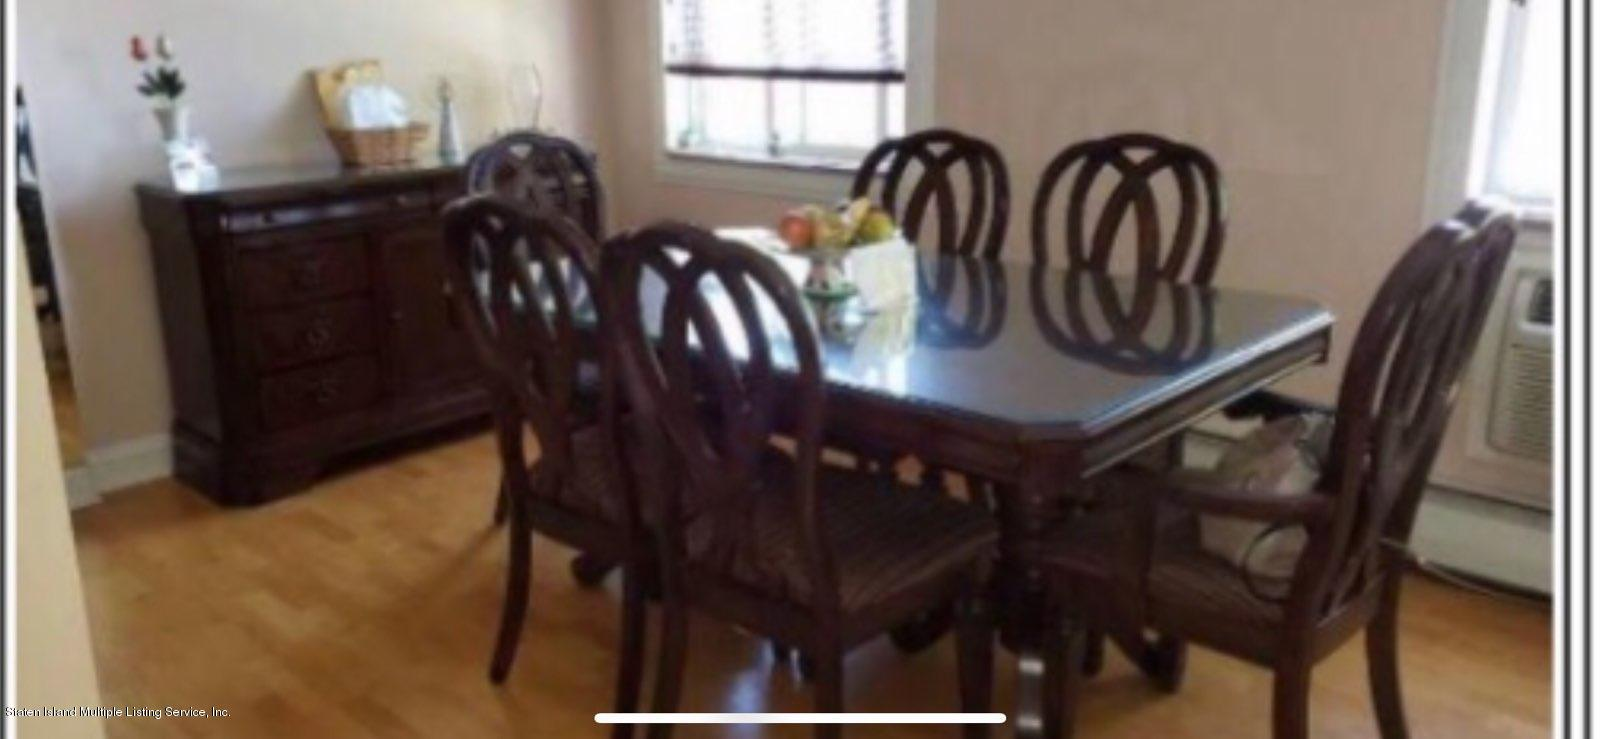 2h 1286 Rockland Avenue,Staten Island,New York,10314,United States,2 Bedrooms Bedrooms,4 Rooms Rooms,1 BathroomBathrooms,Res-Rental,Rockland,1133001